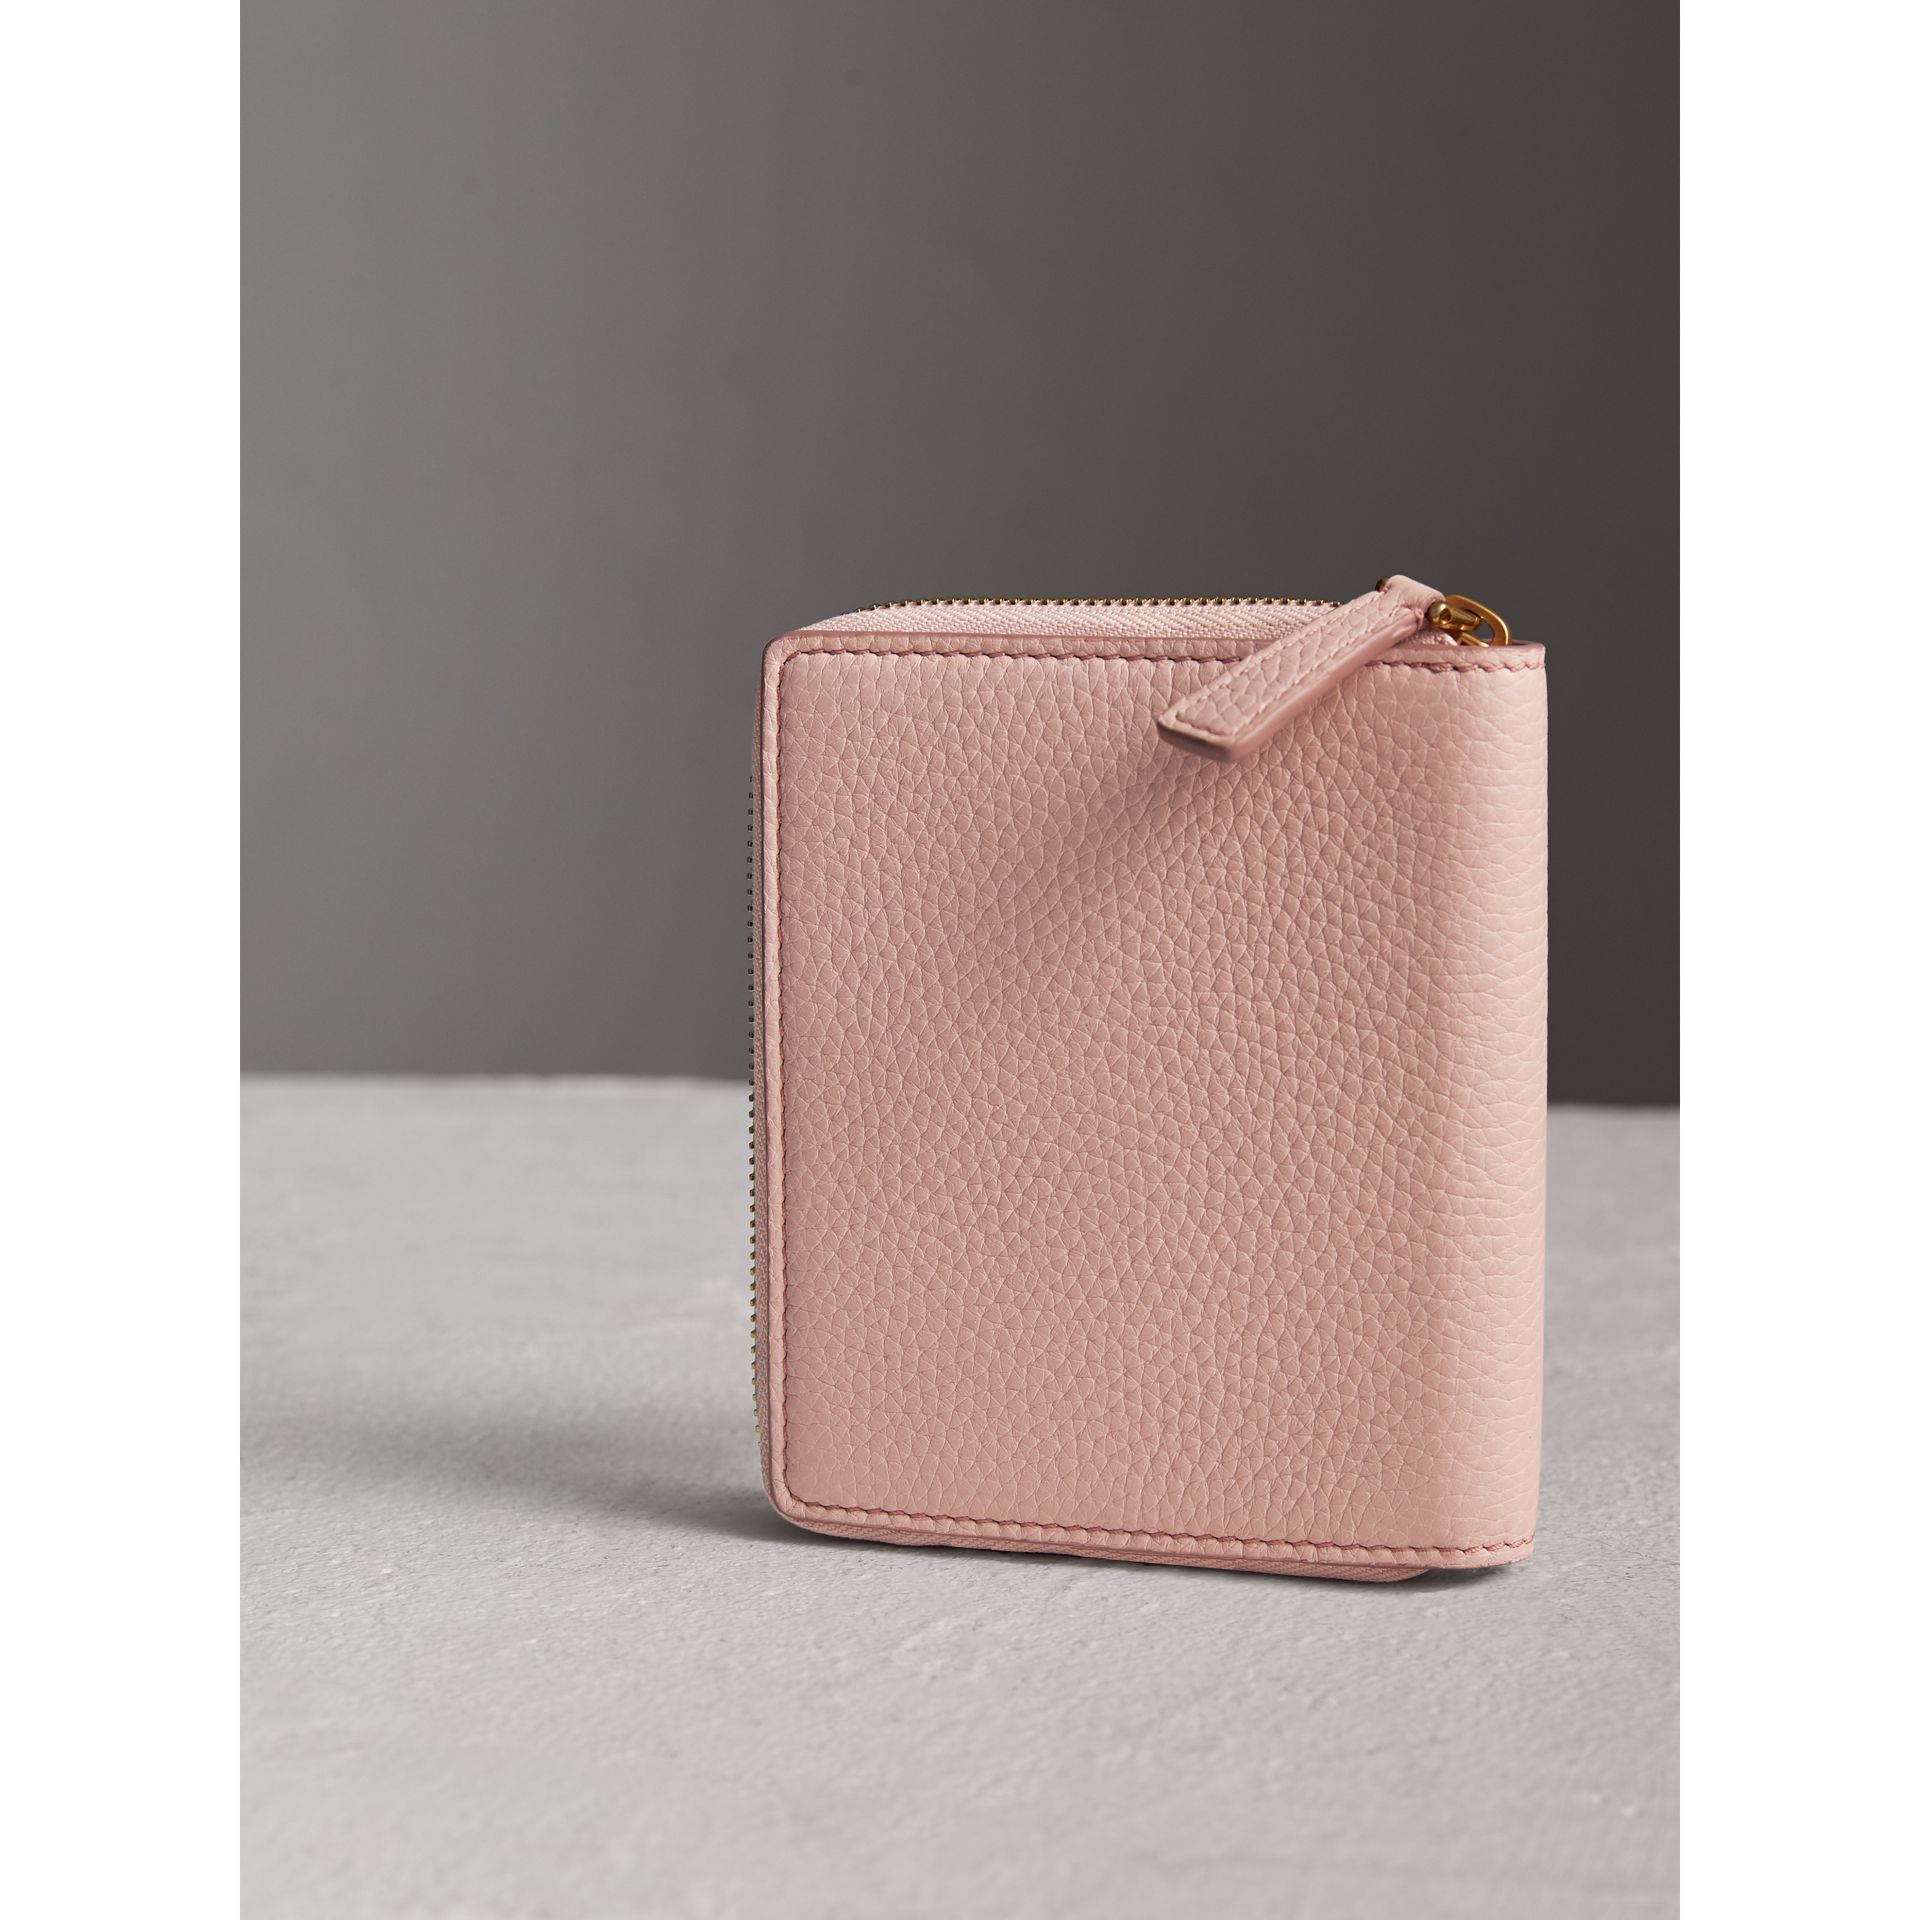 Embossed Grainy Leather Ziparound A6 Notebook Case in Pale Ash Rose | Burberry United States - gallery image 2